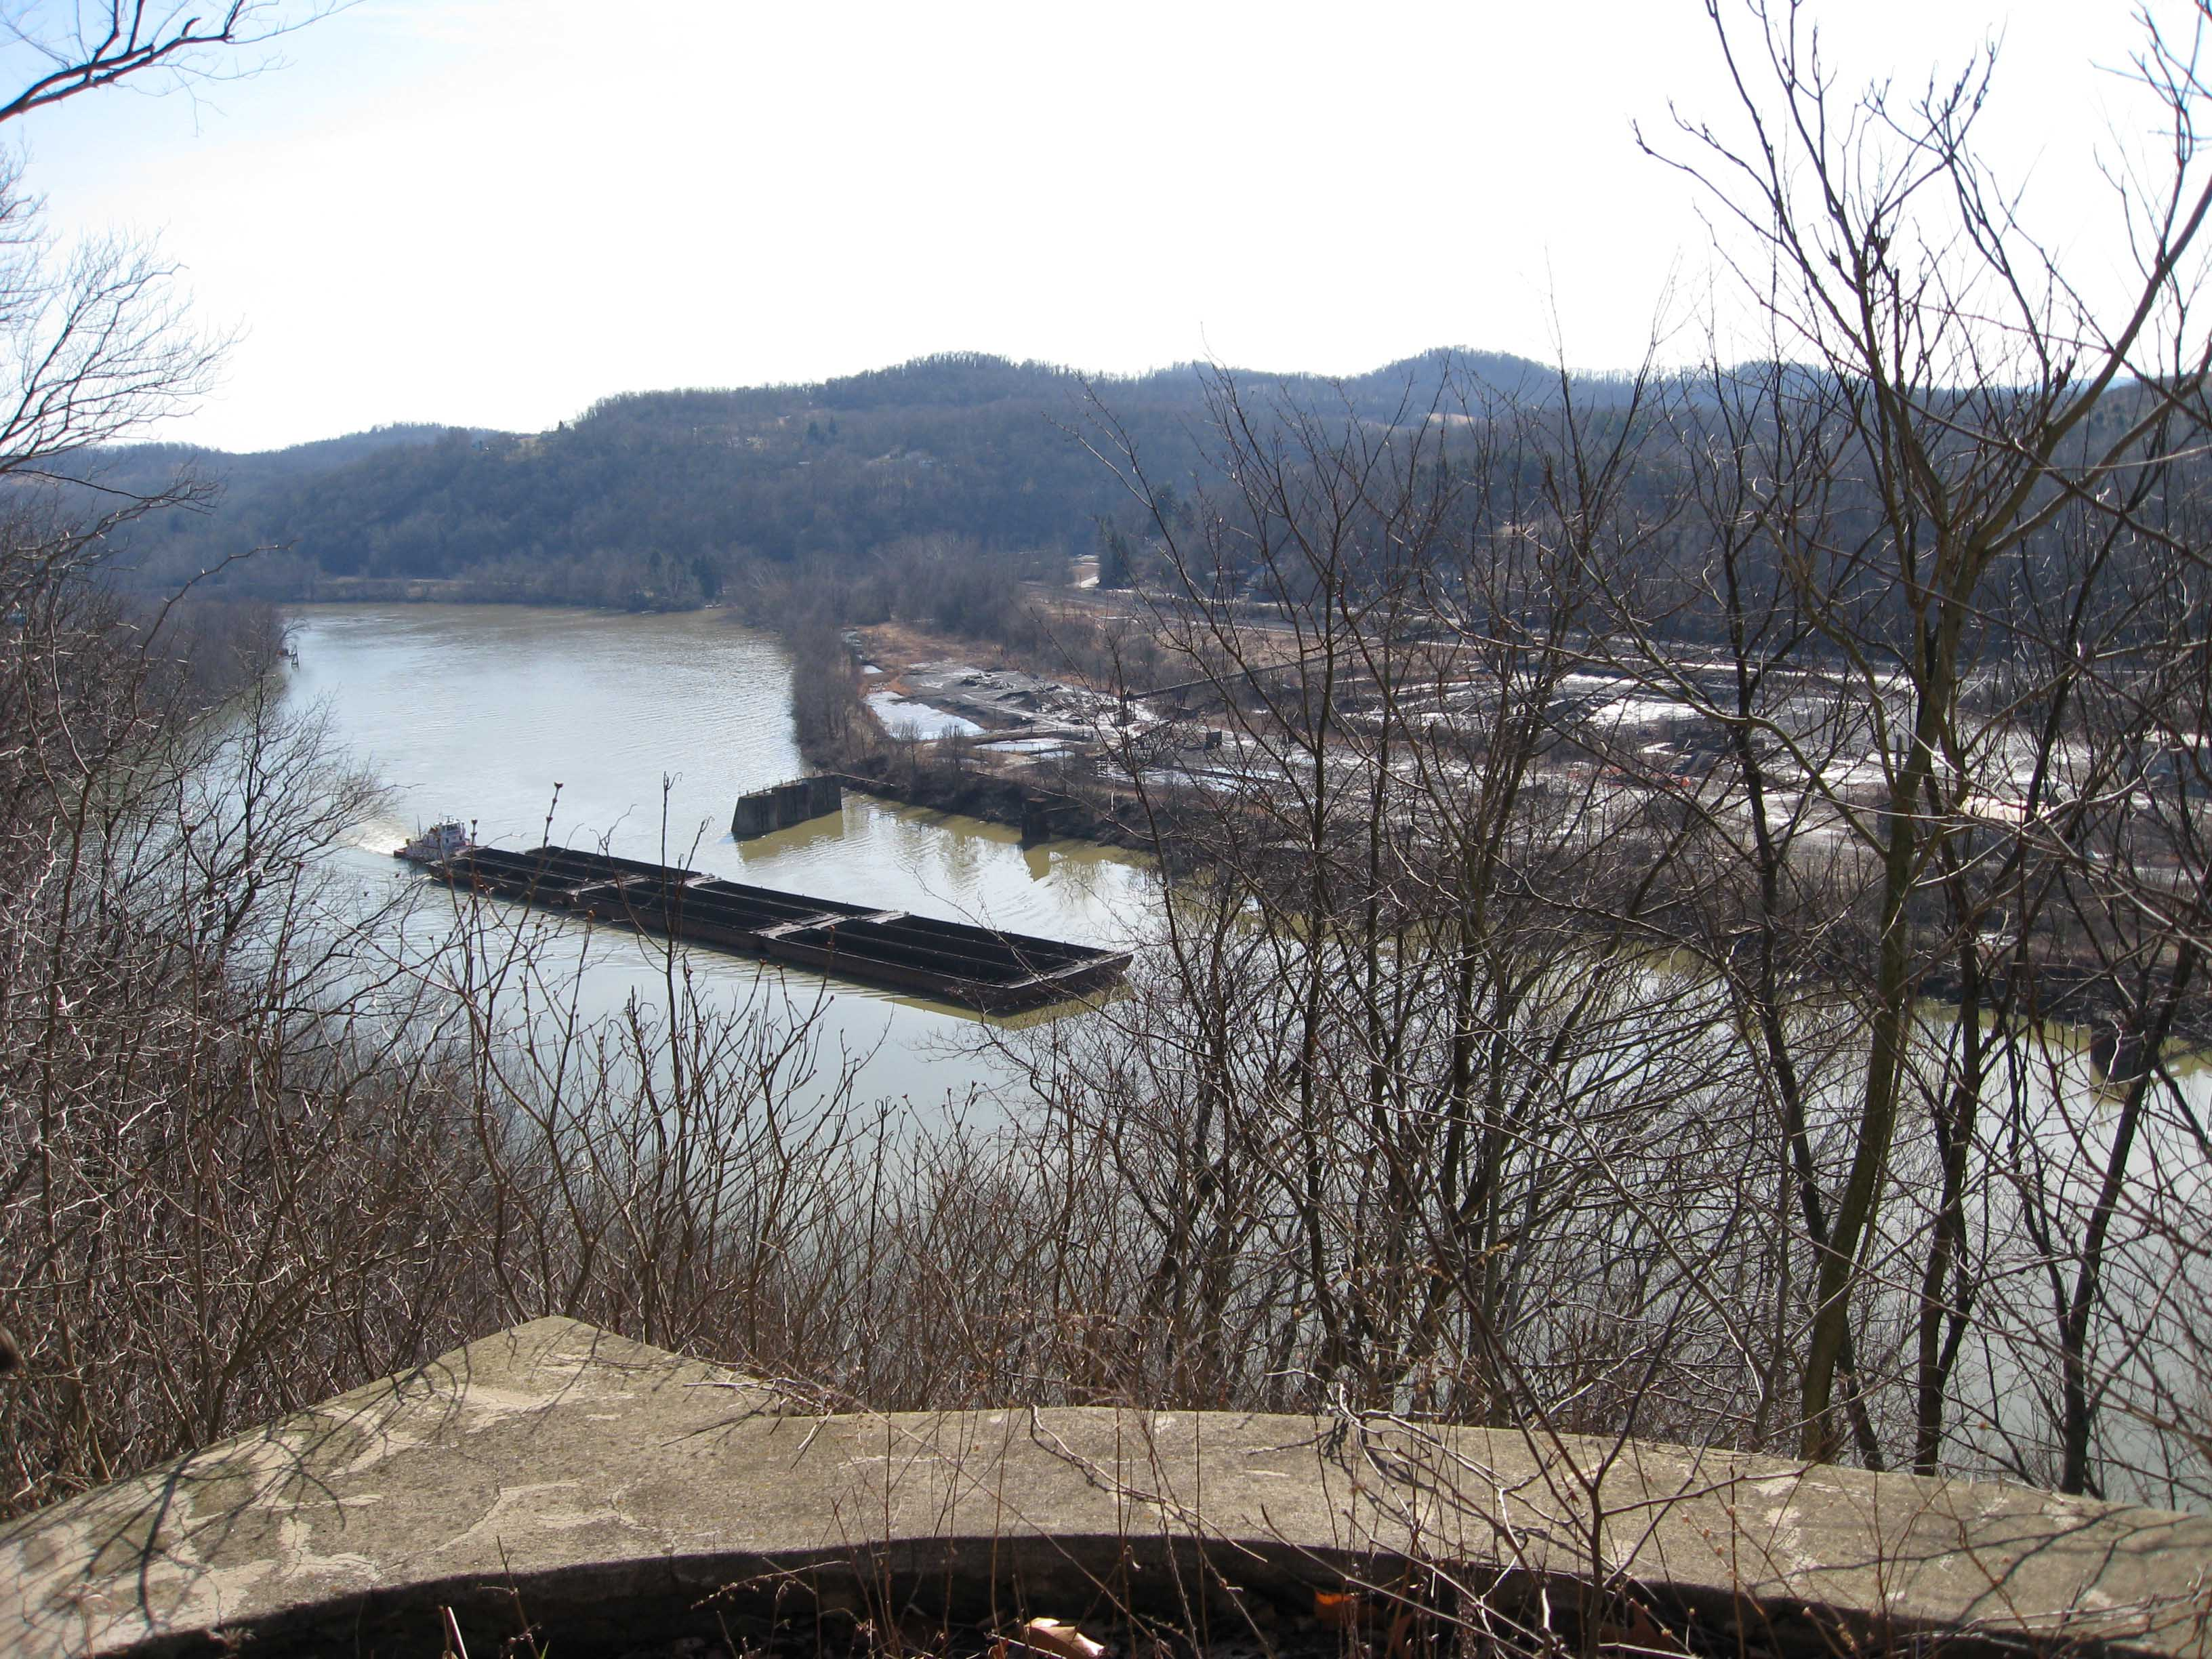 View of the Monongahela River from a gazebo on the grounds.